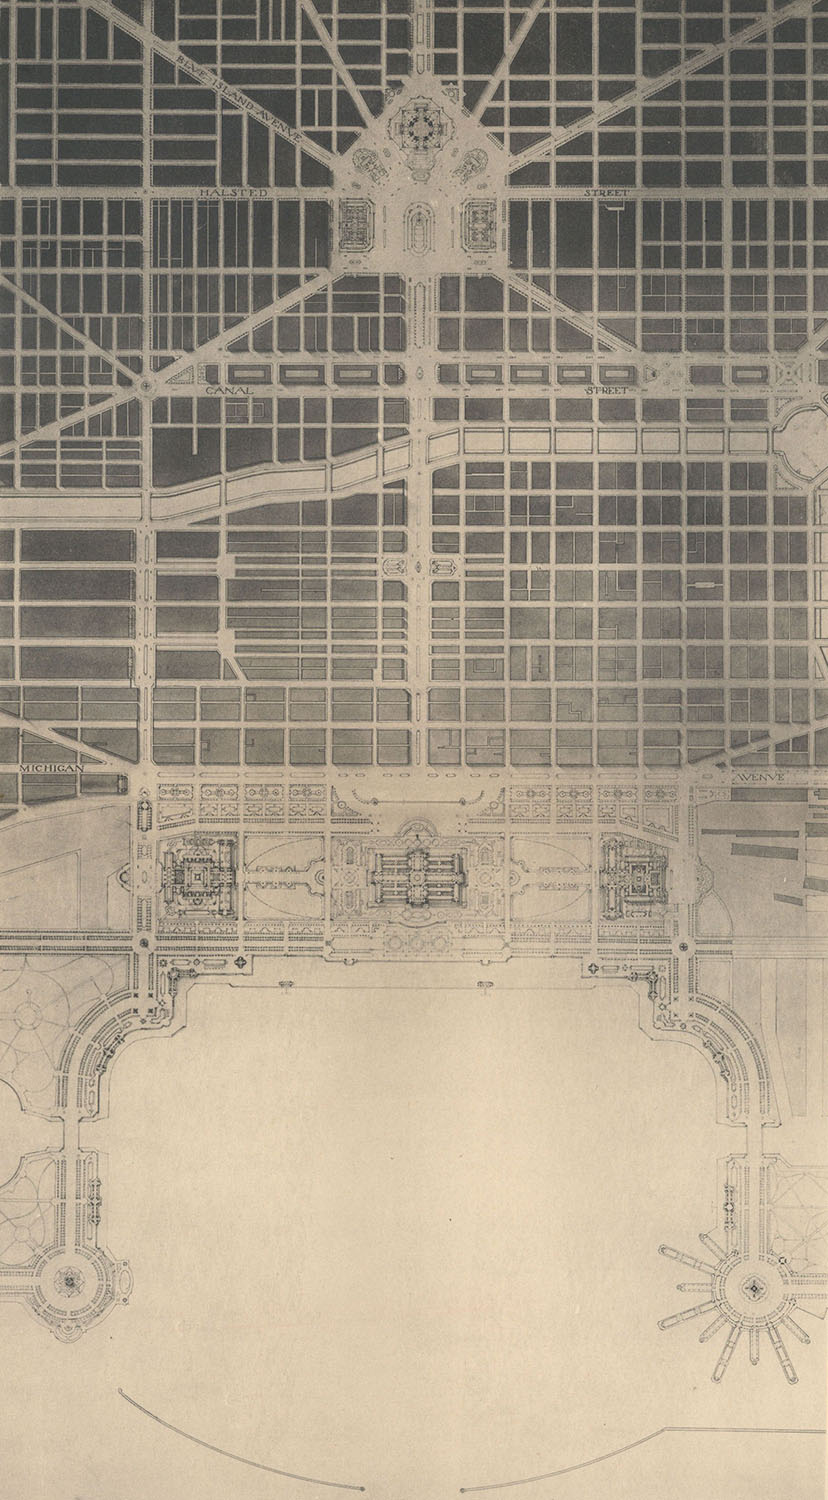 CXXIX: Chicago's Civic Center, Business Center, Grant Park and Yacht Harbor